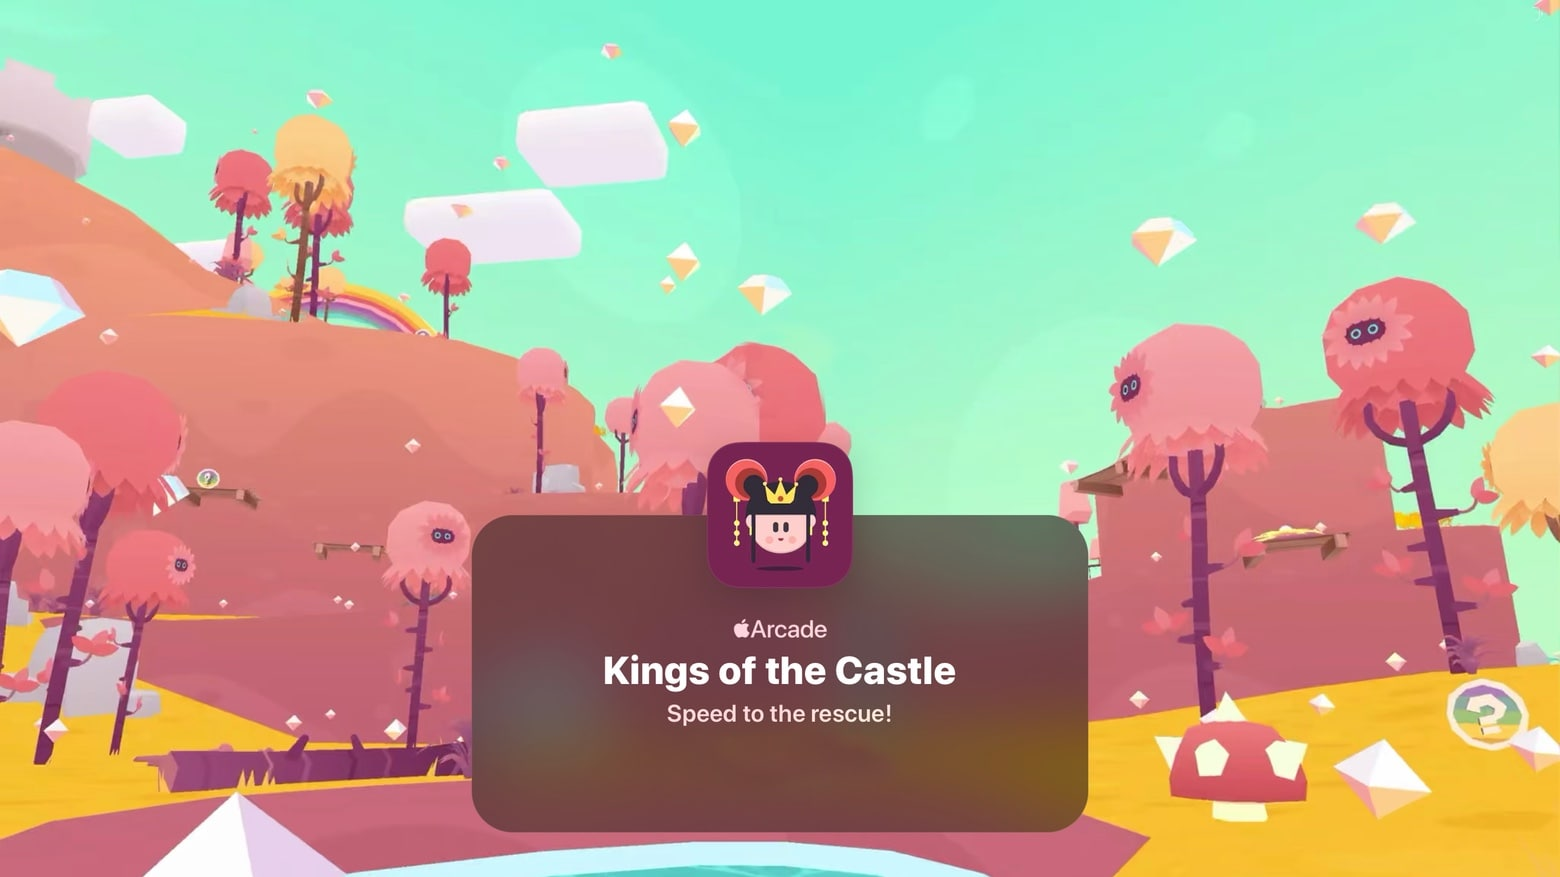 Kings of the Castle is the latest addition to Apple Arcade